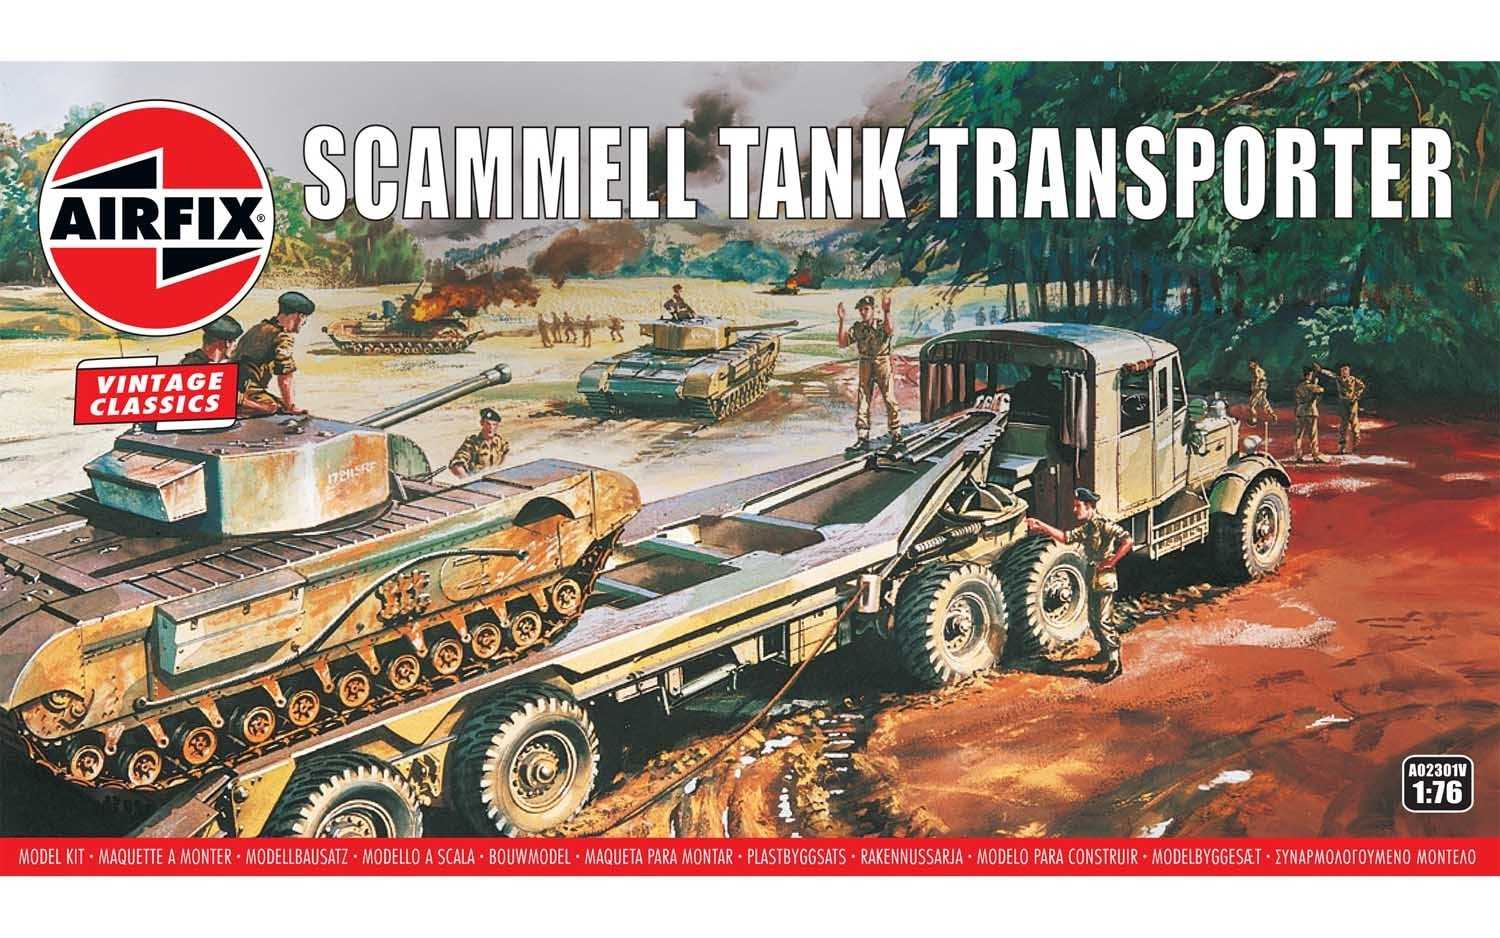 1:76 Scammell Tank Transporter (Classic Kit VINTAGE Military)